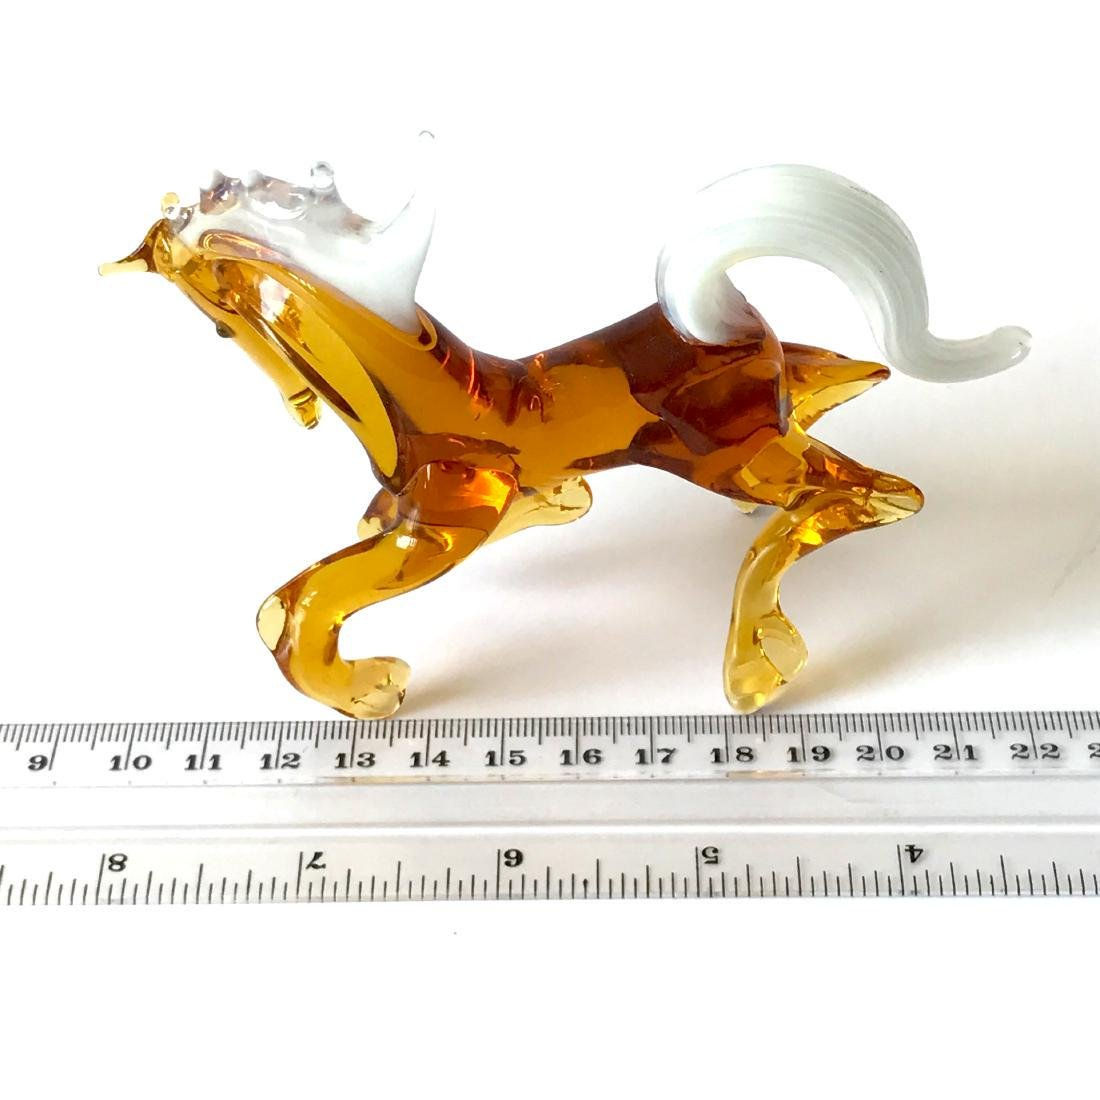 Figurine of horse amber coloured hand blown glass 10x12 - 4